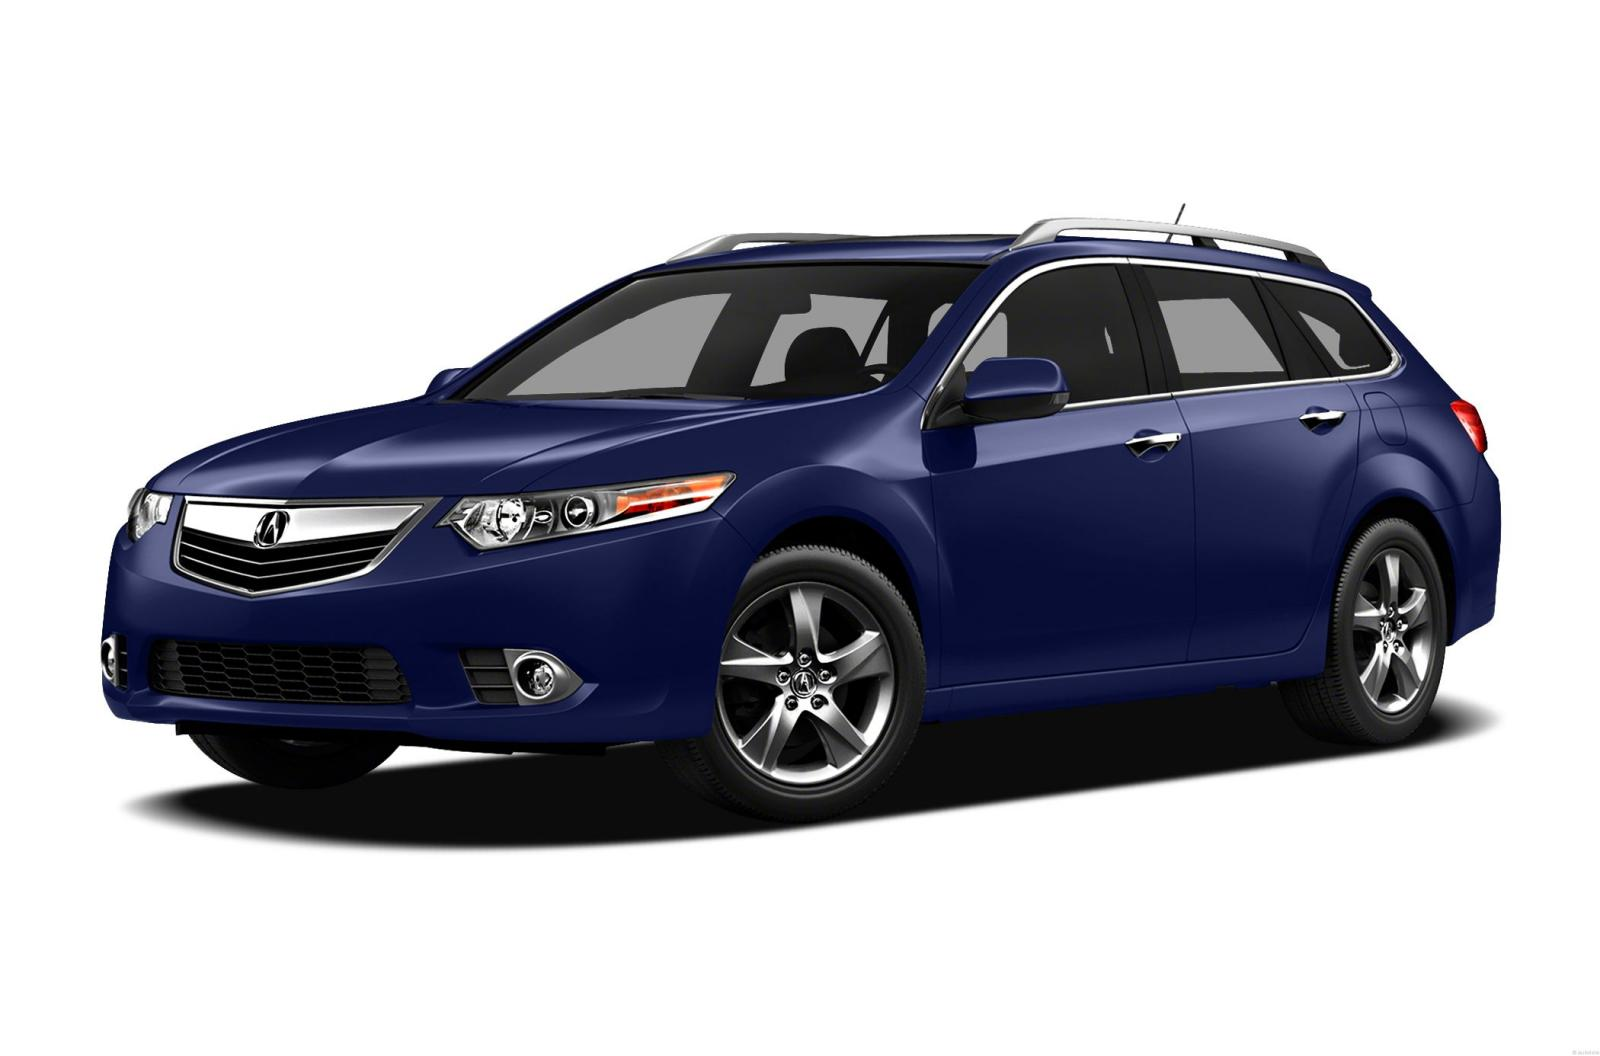 2012 acura tsx sport wagon information and photos zombiedrive. Black Bedroom Furniture Sets. Home Design Ideas